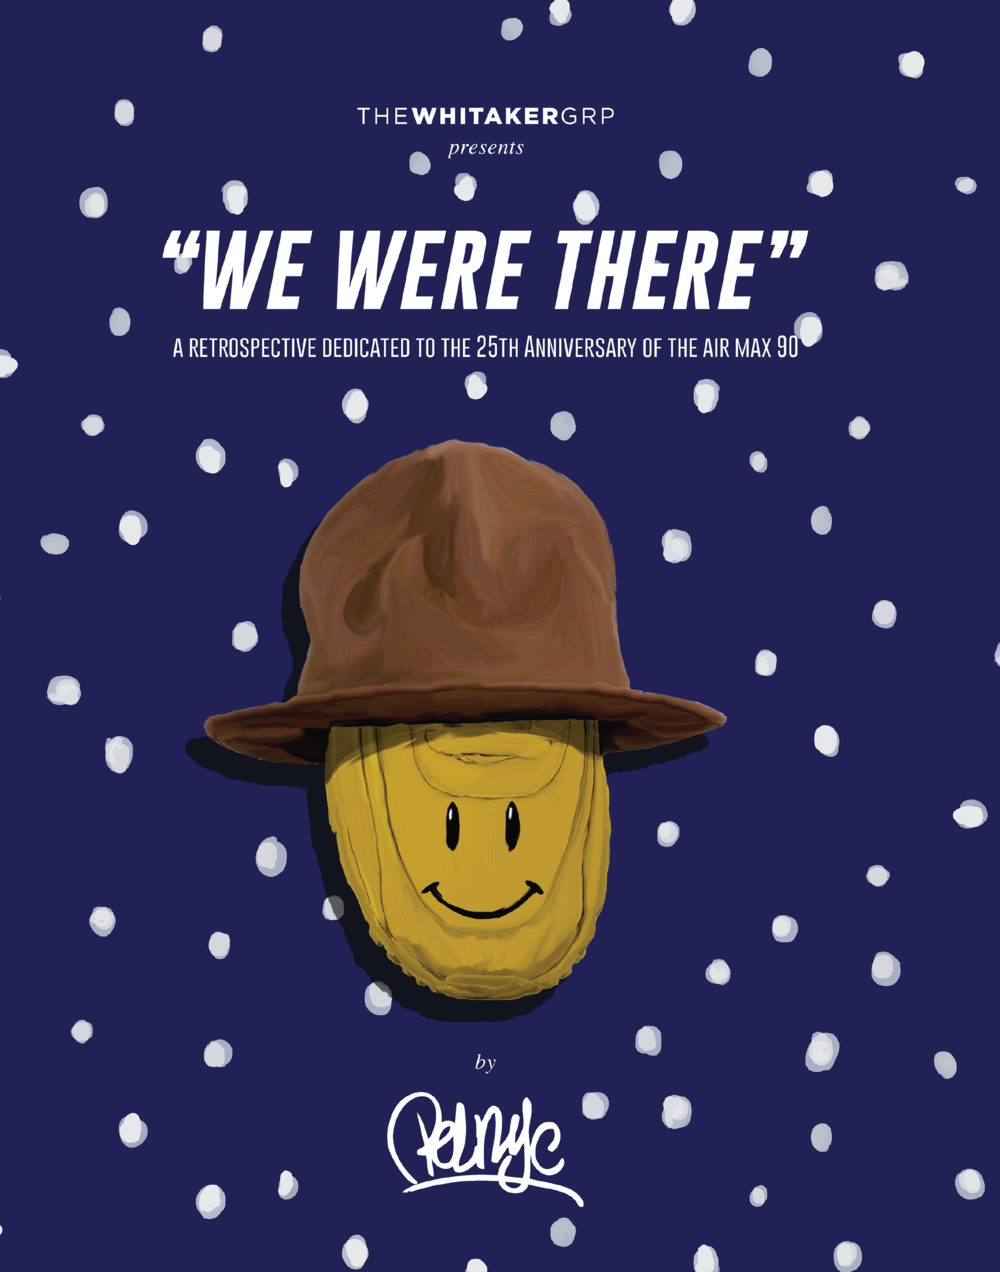 airmax book we were there pelnyc website-01.png